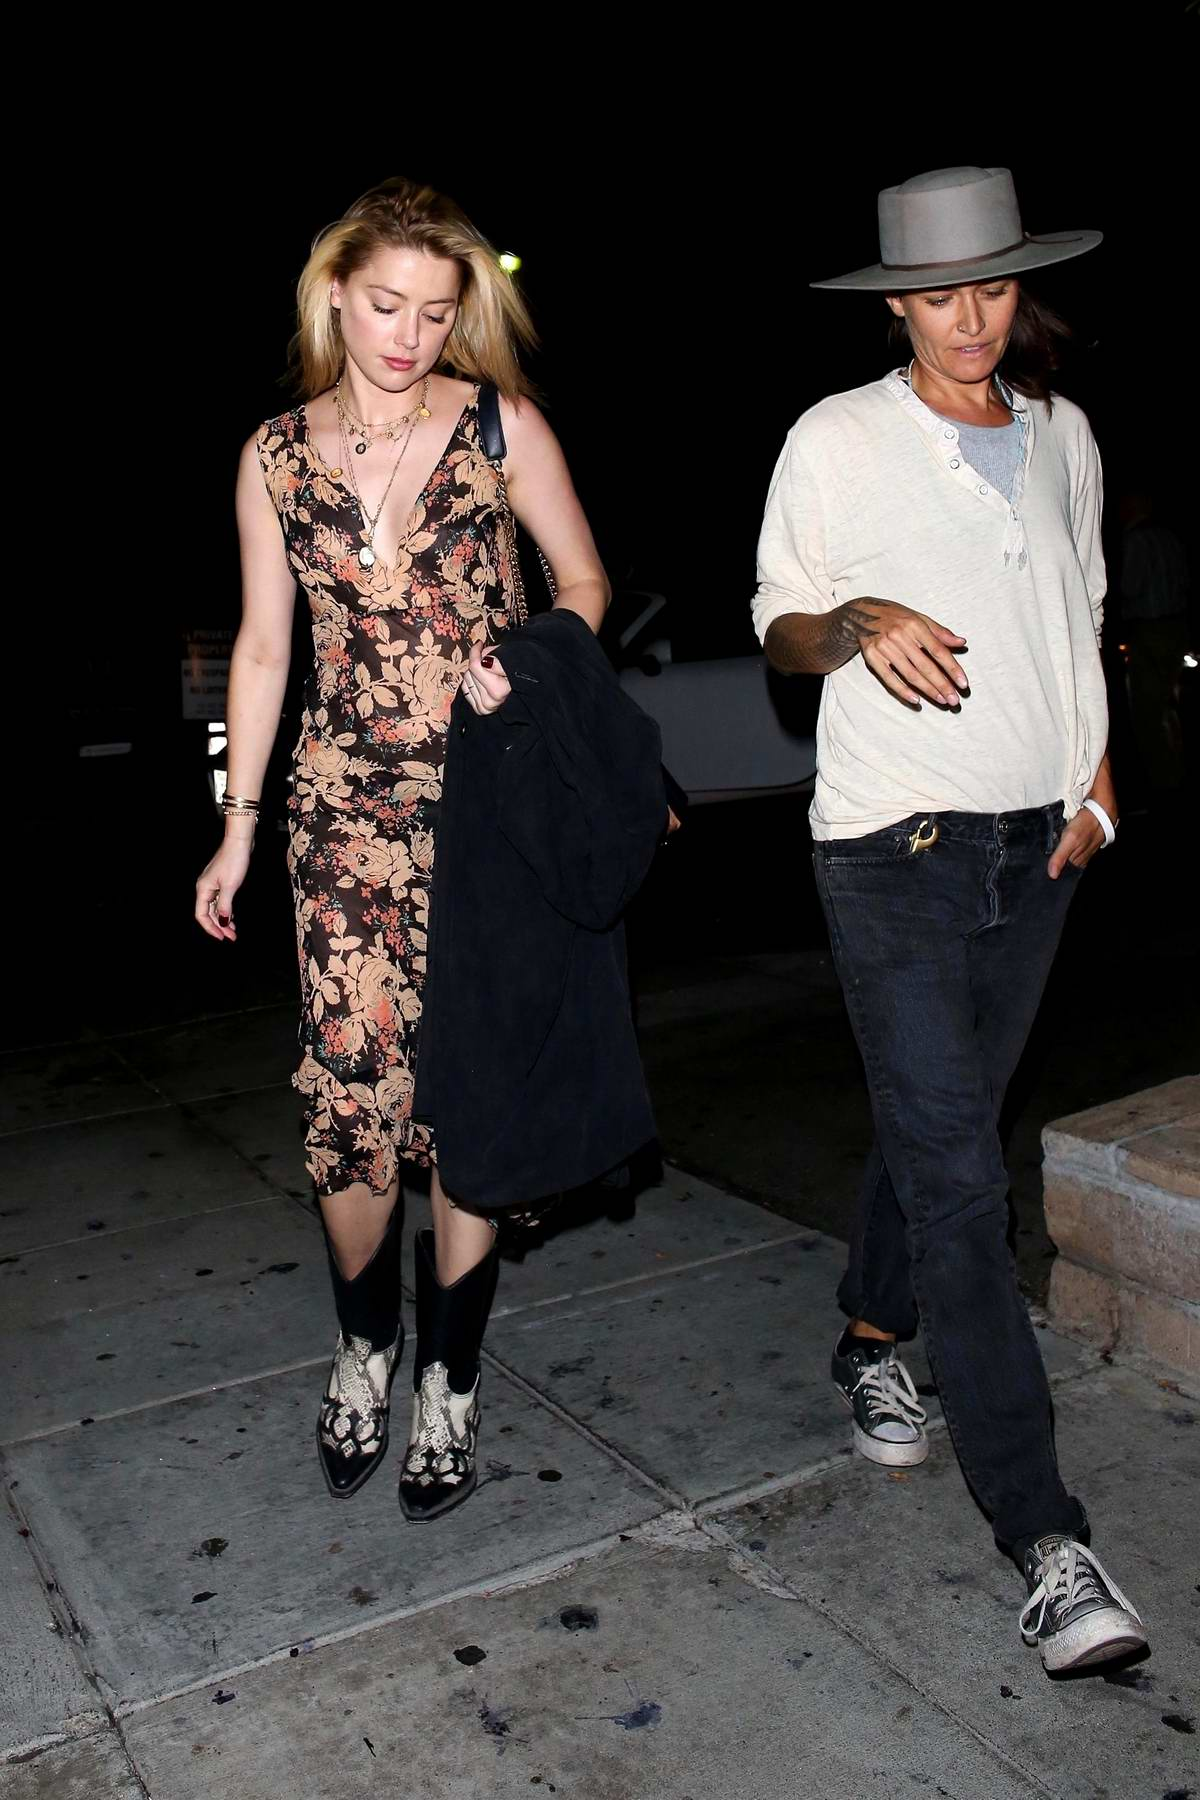 Amber Heard looks beautiful in a floral print dress as she grabs dinner with a friend in Beverly Hills, Los Angeles